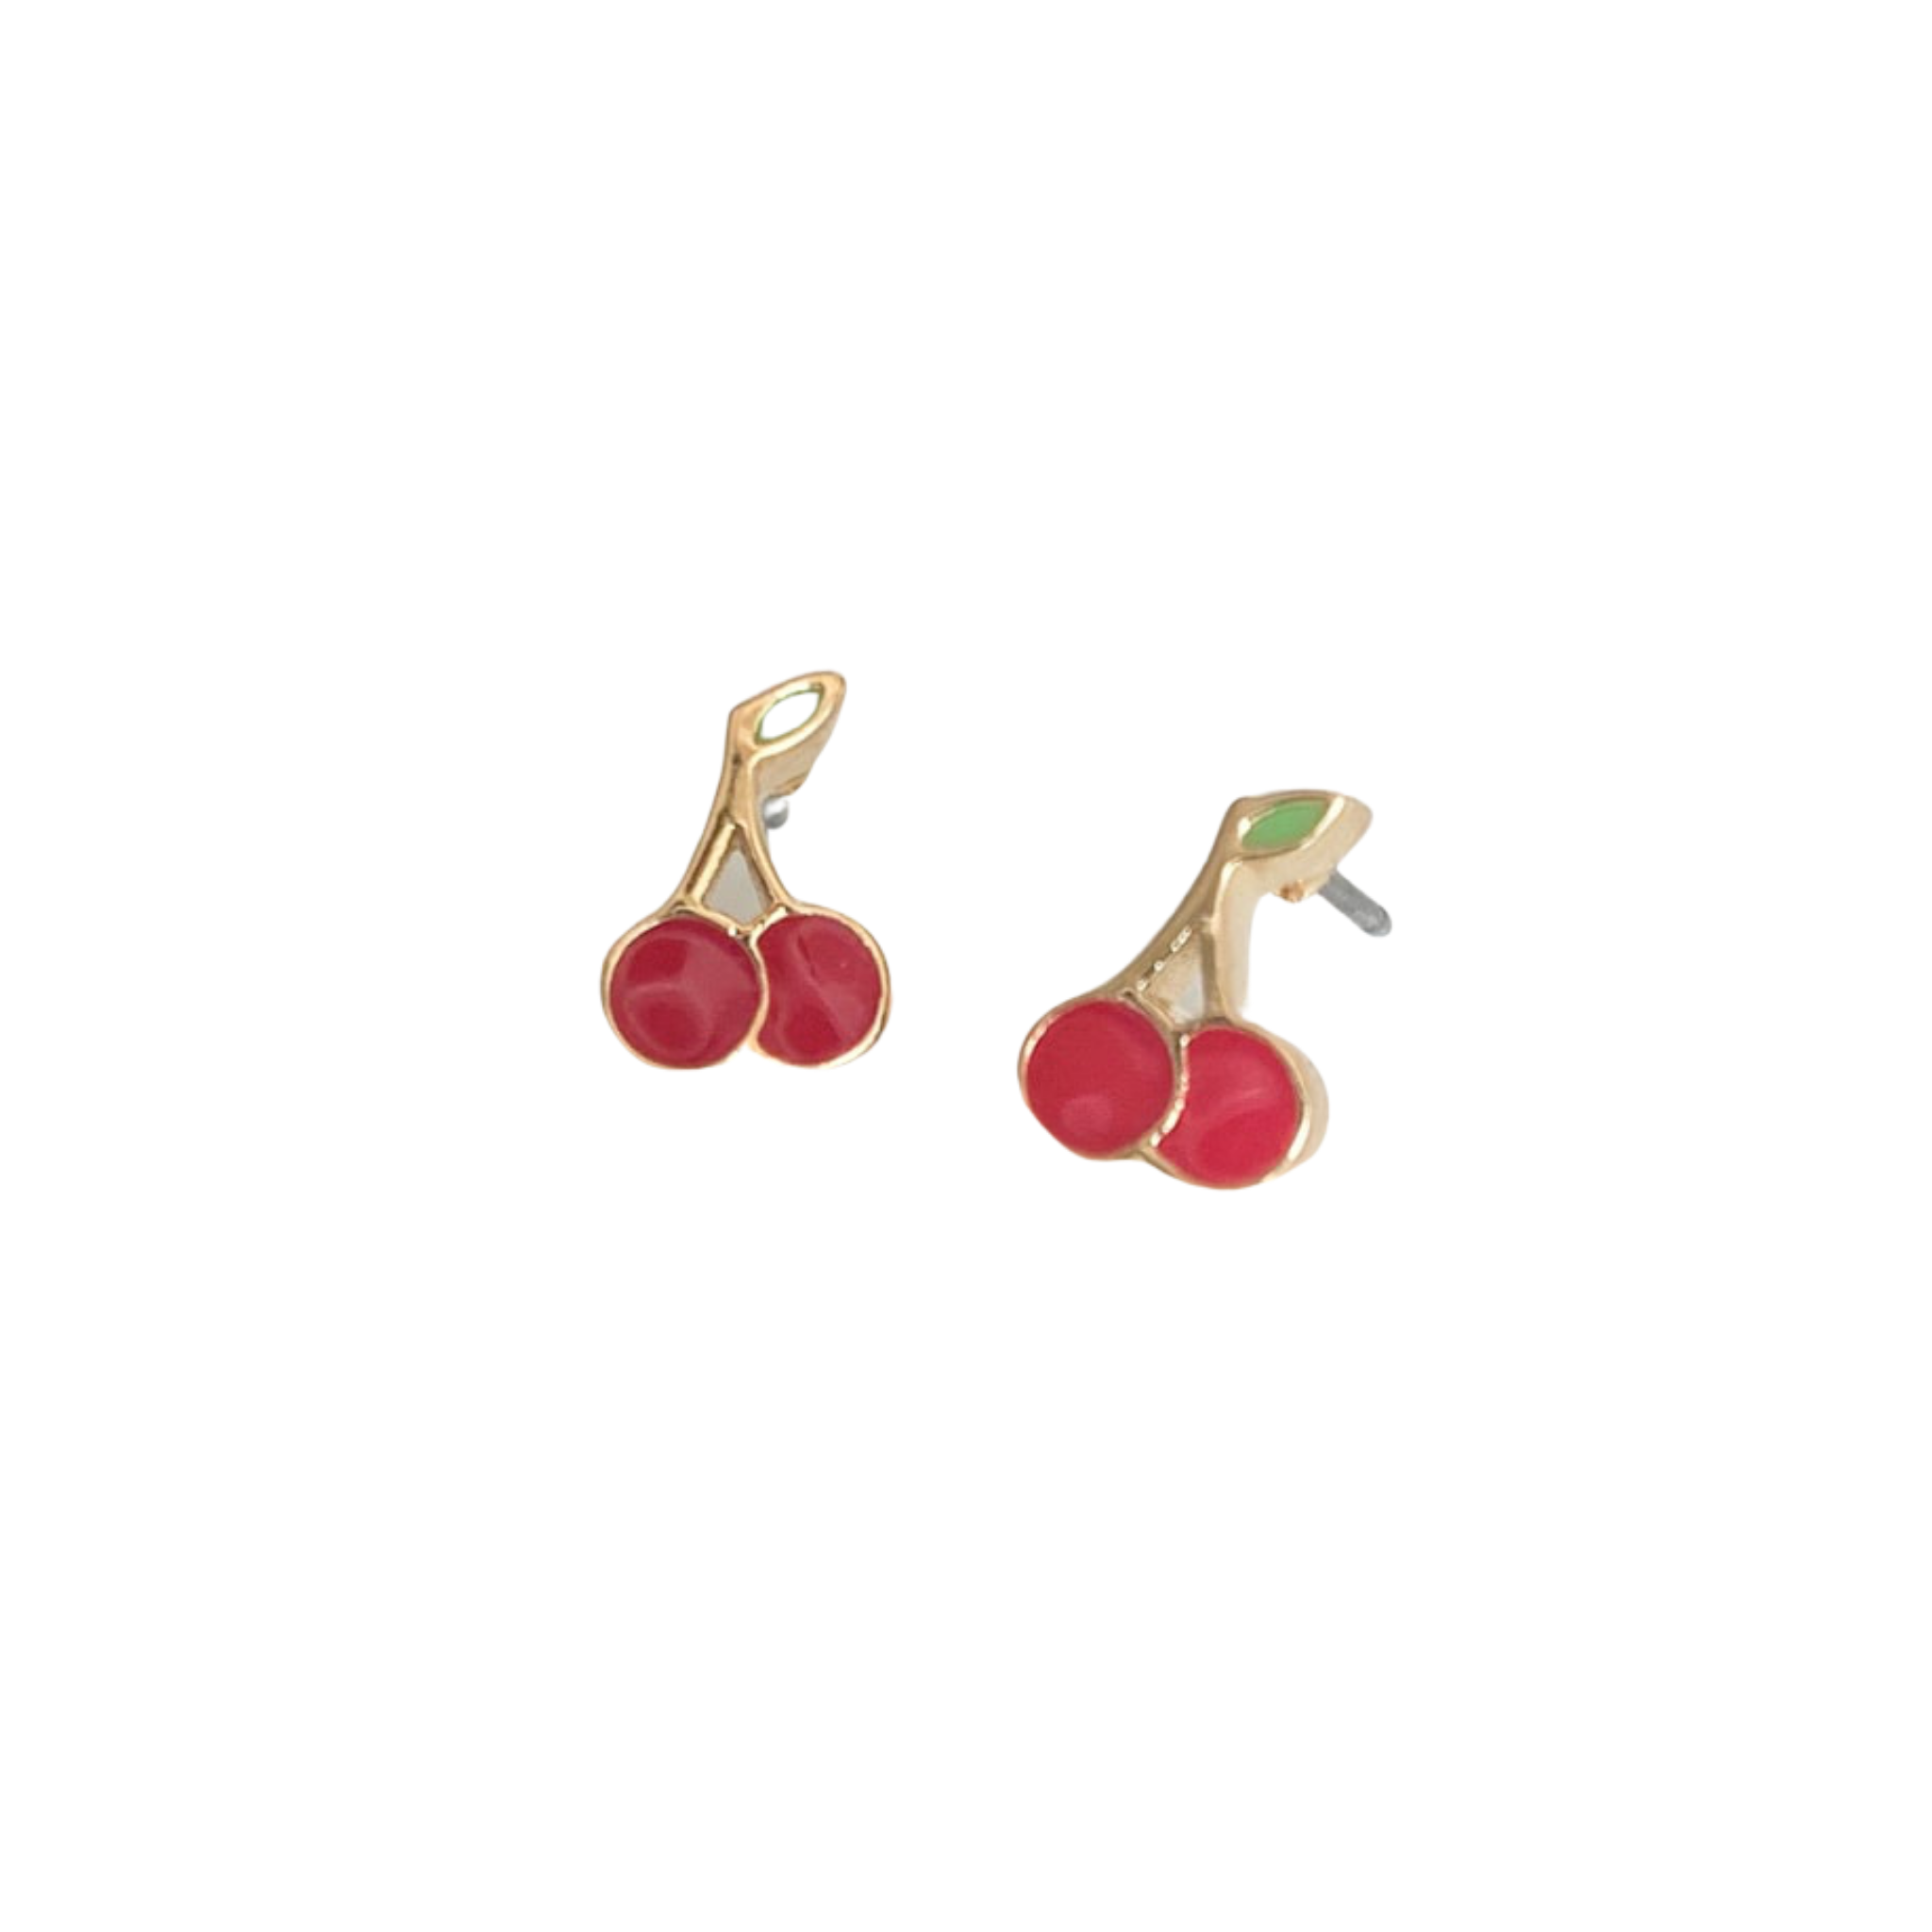 Somers Enamel Cherry Pierced Stud Earrings (Gold and Silver)